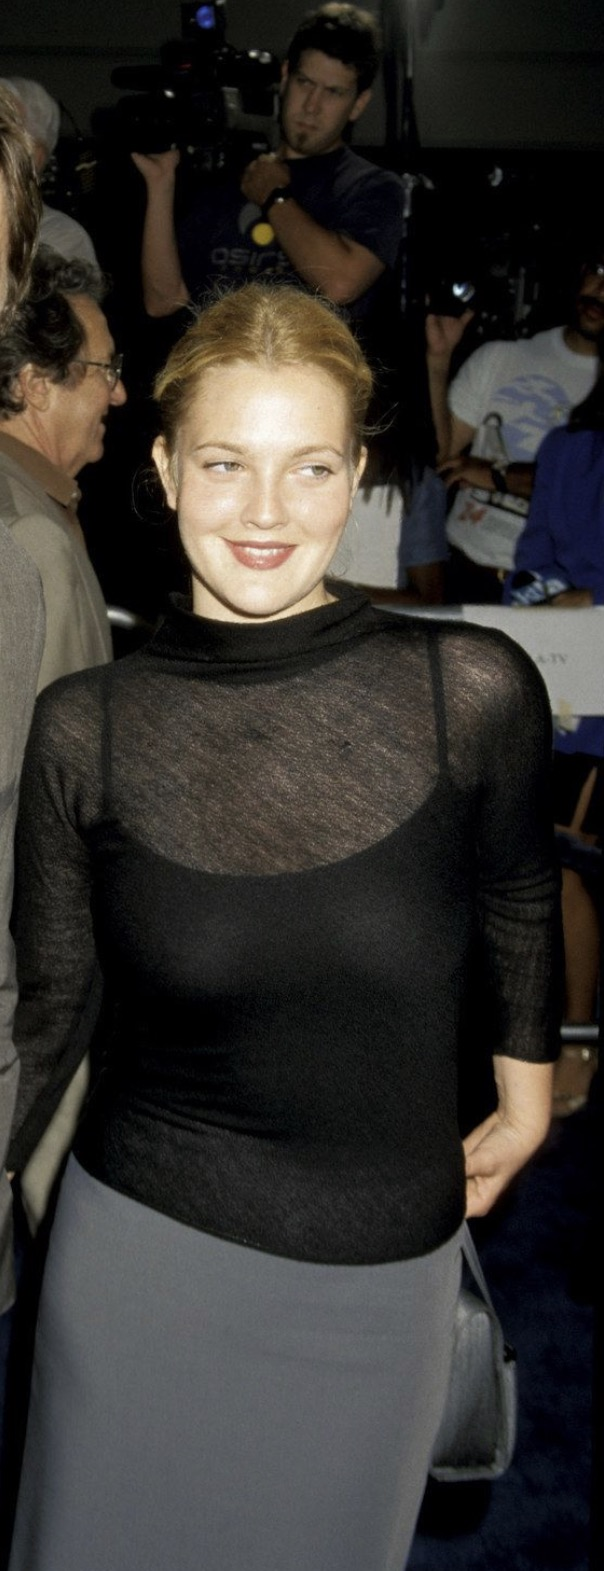 drew barrymore in sheer top